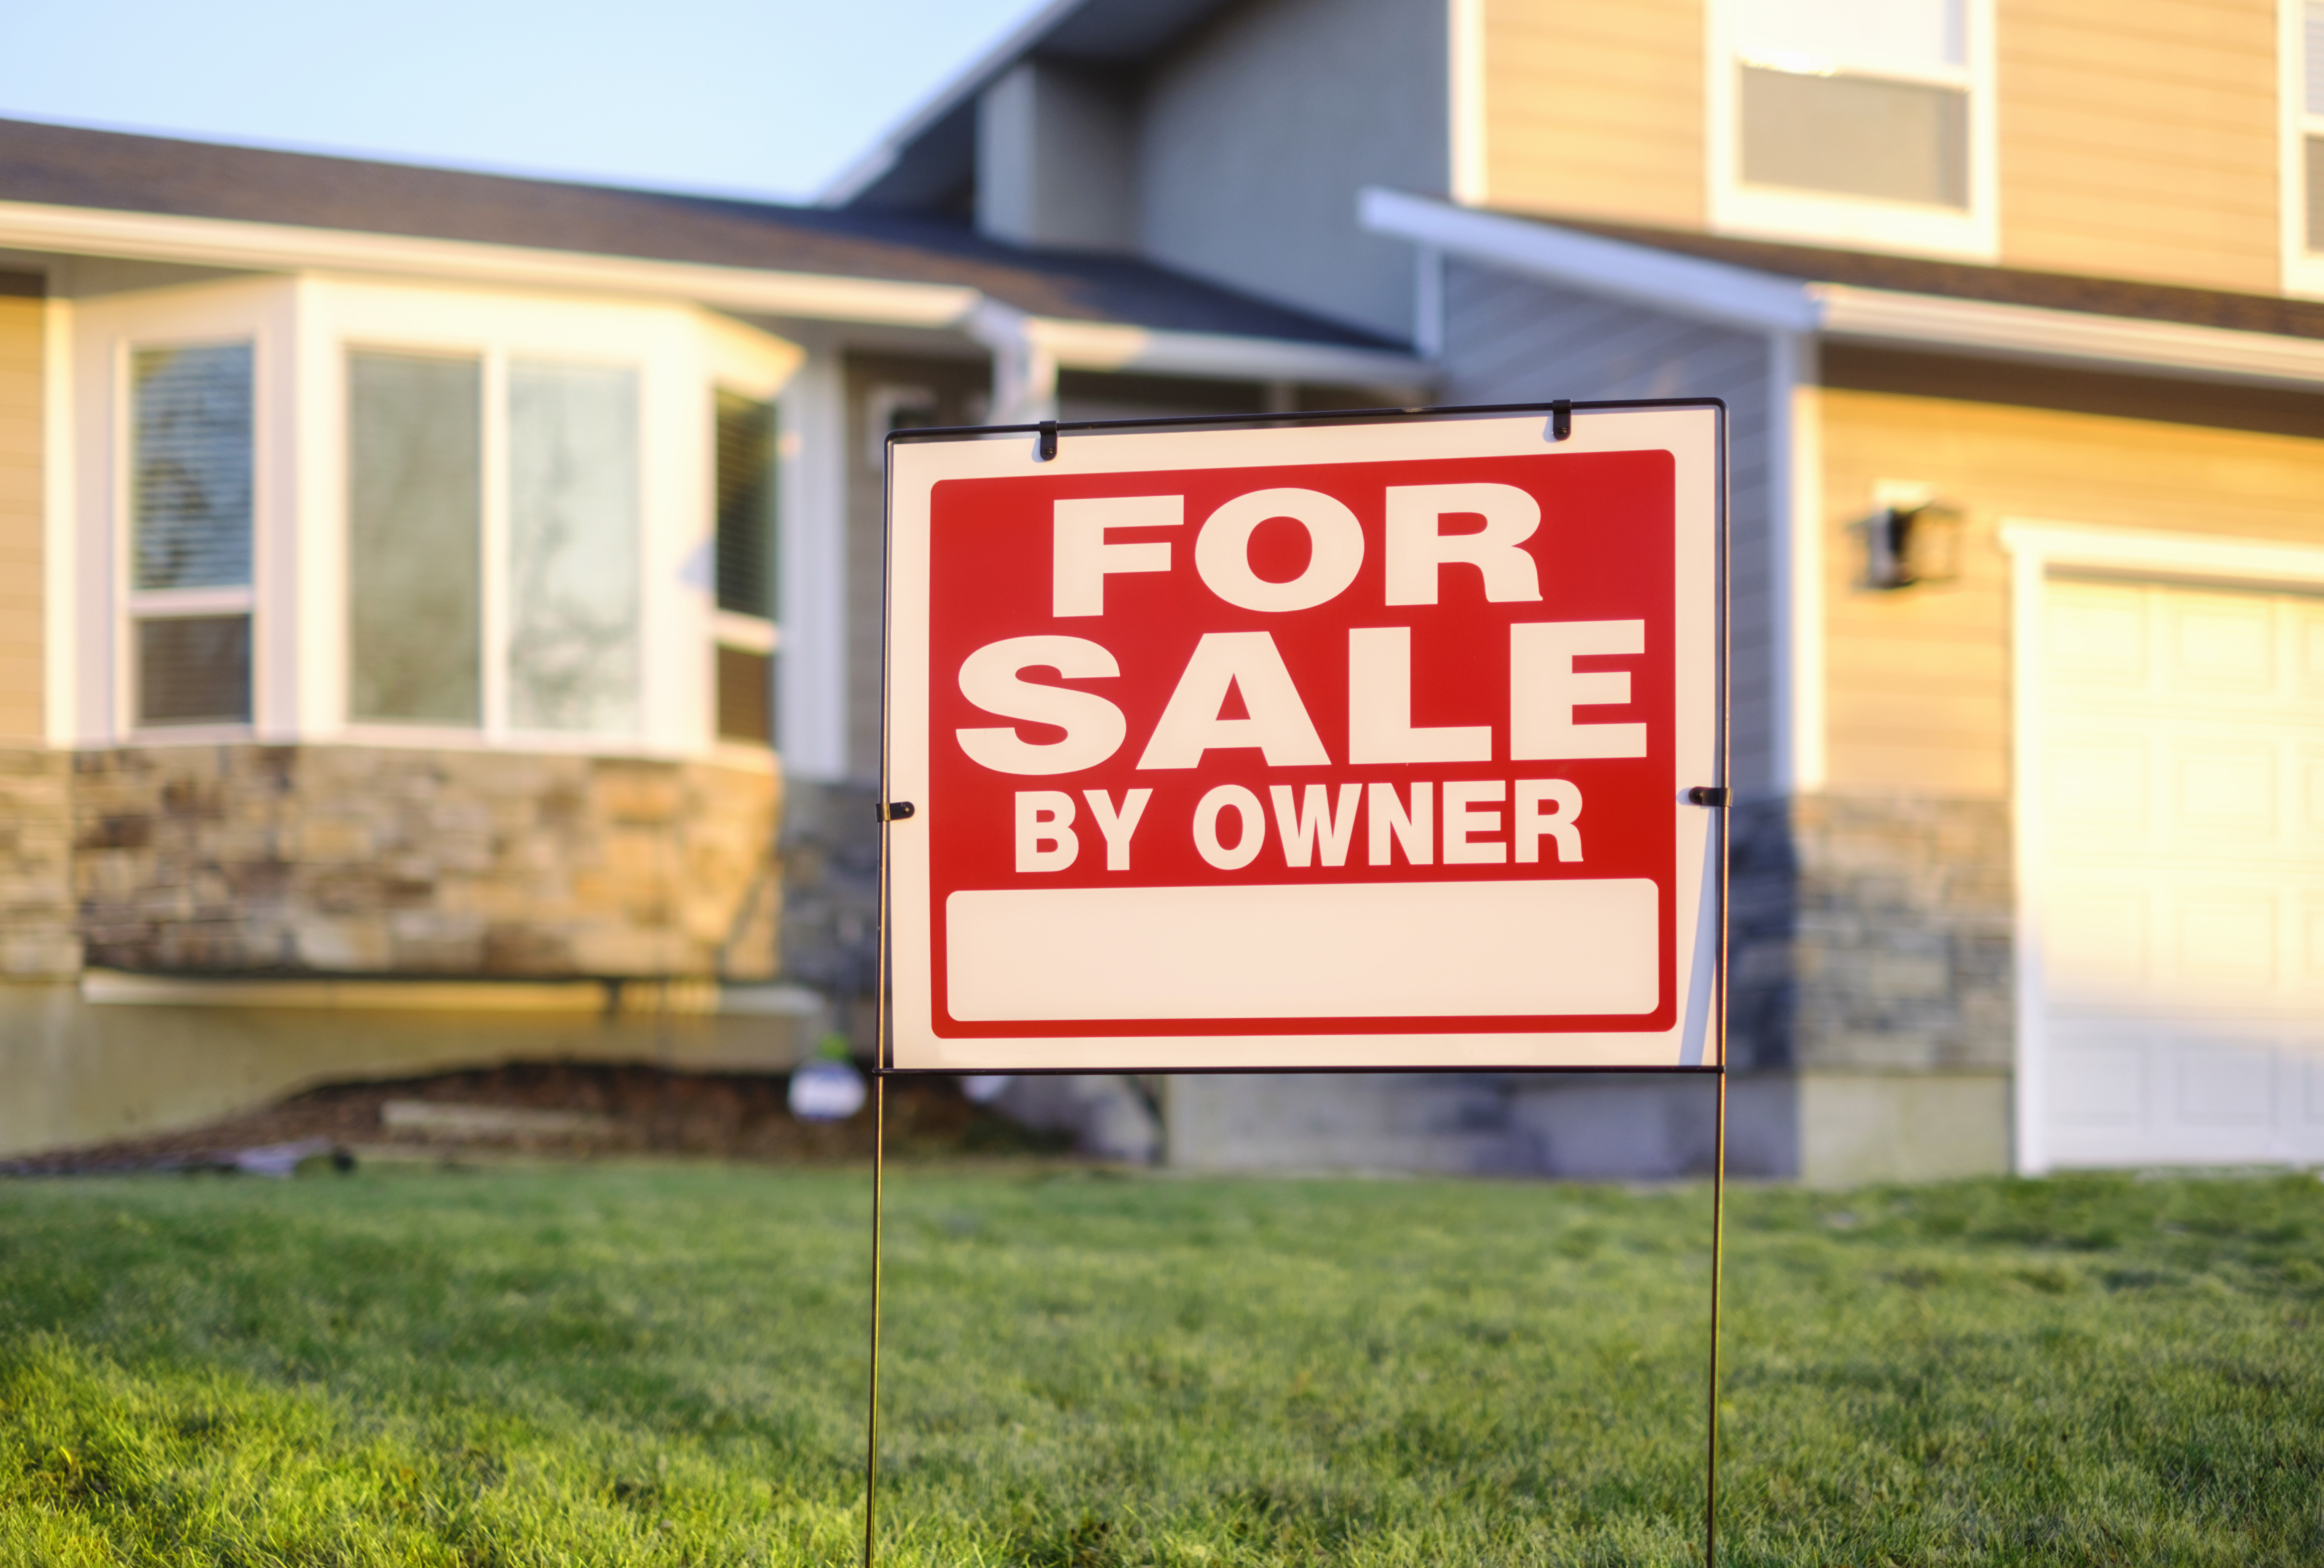 Homes For Sale By Owner >> What Is The Procedure For Closing A For Sale By Owner House Sale